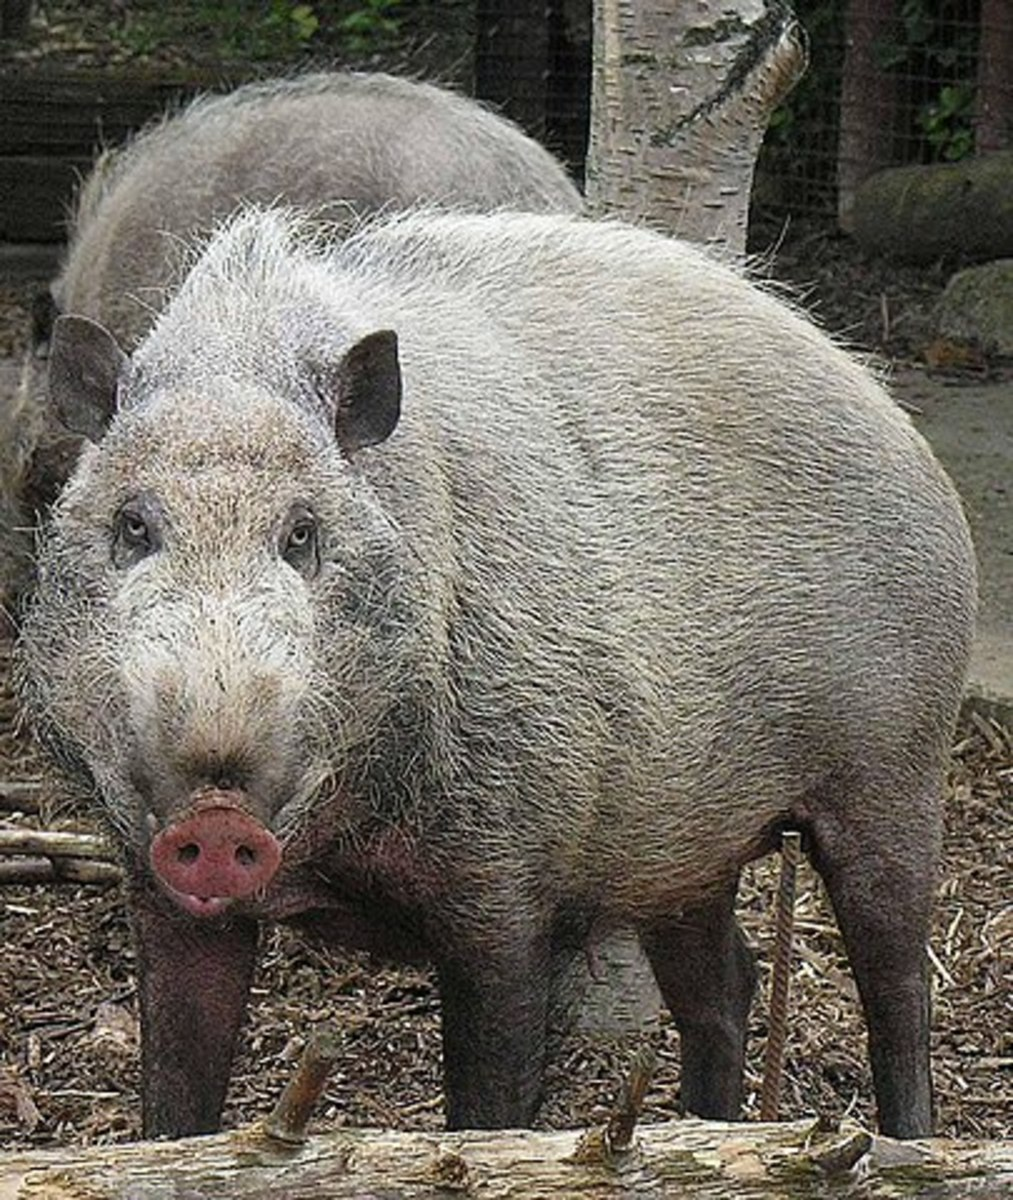 The Bornean Bearded Pig can be as playful as it is dangerous, so take care.